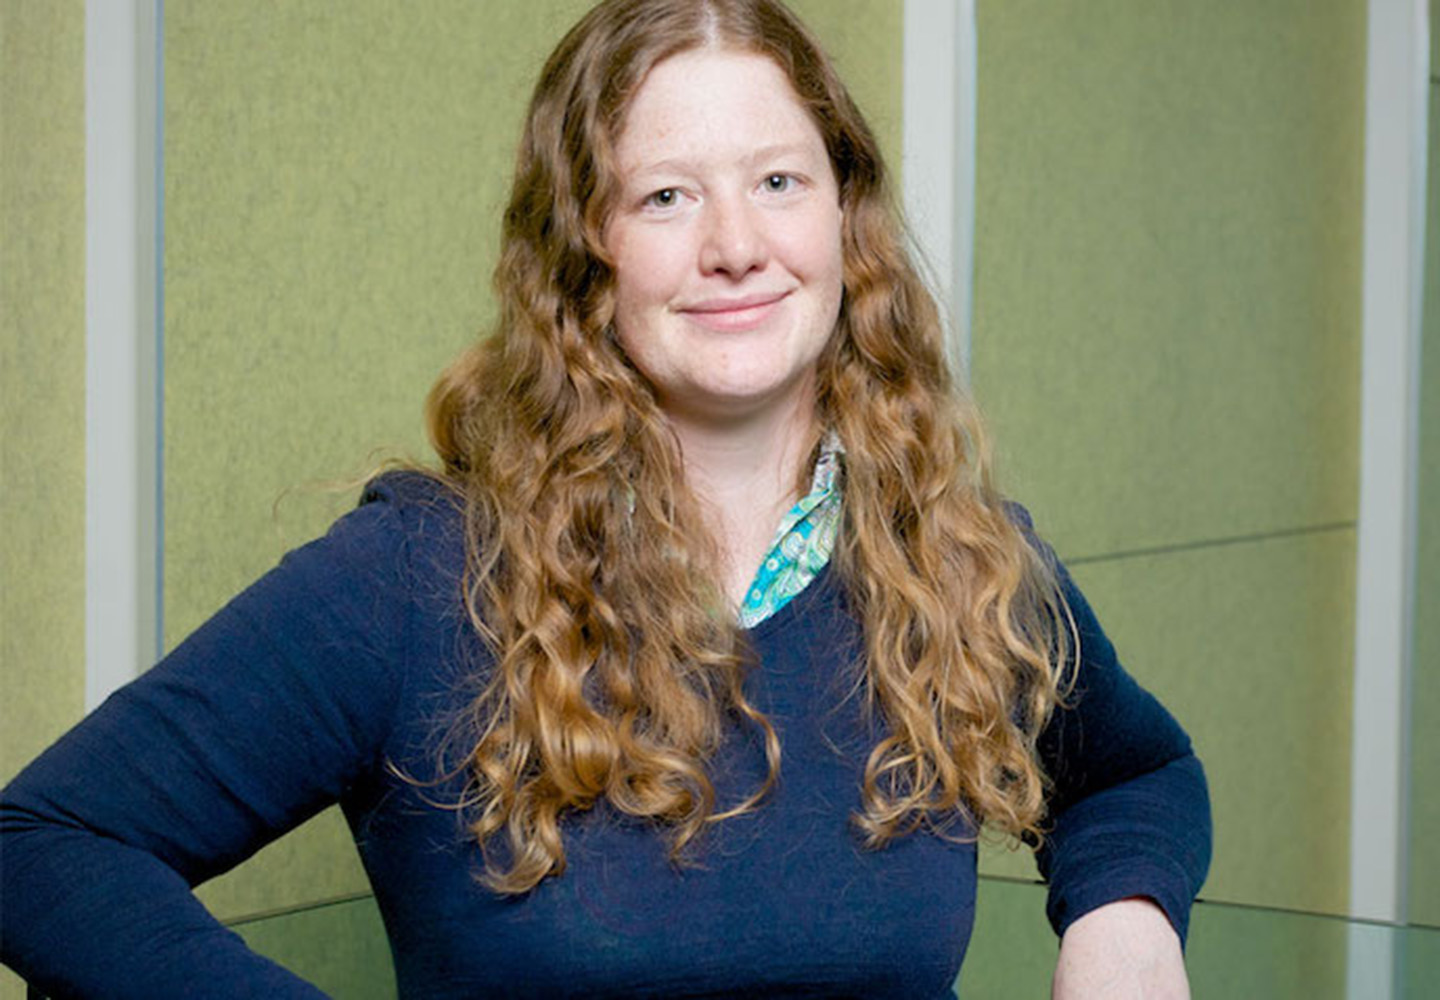 Dr Nicola Gaston (Image supplied)